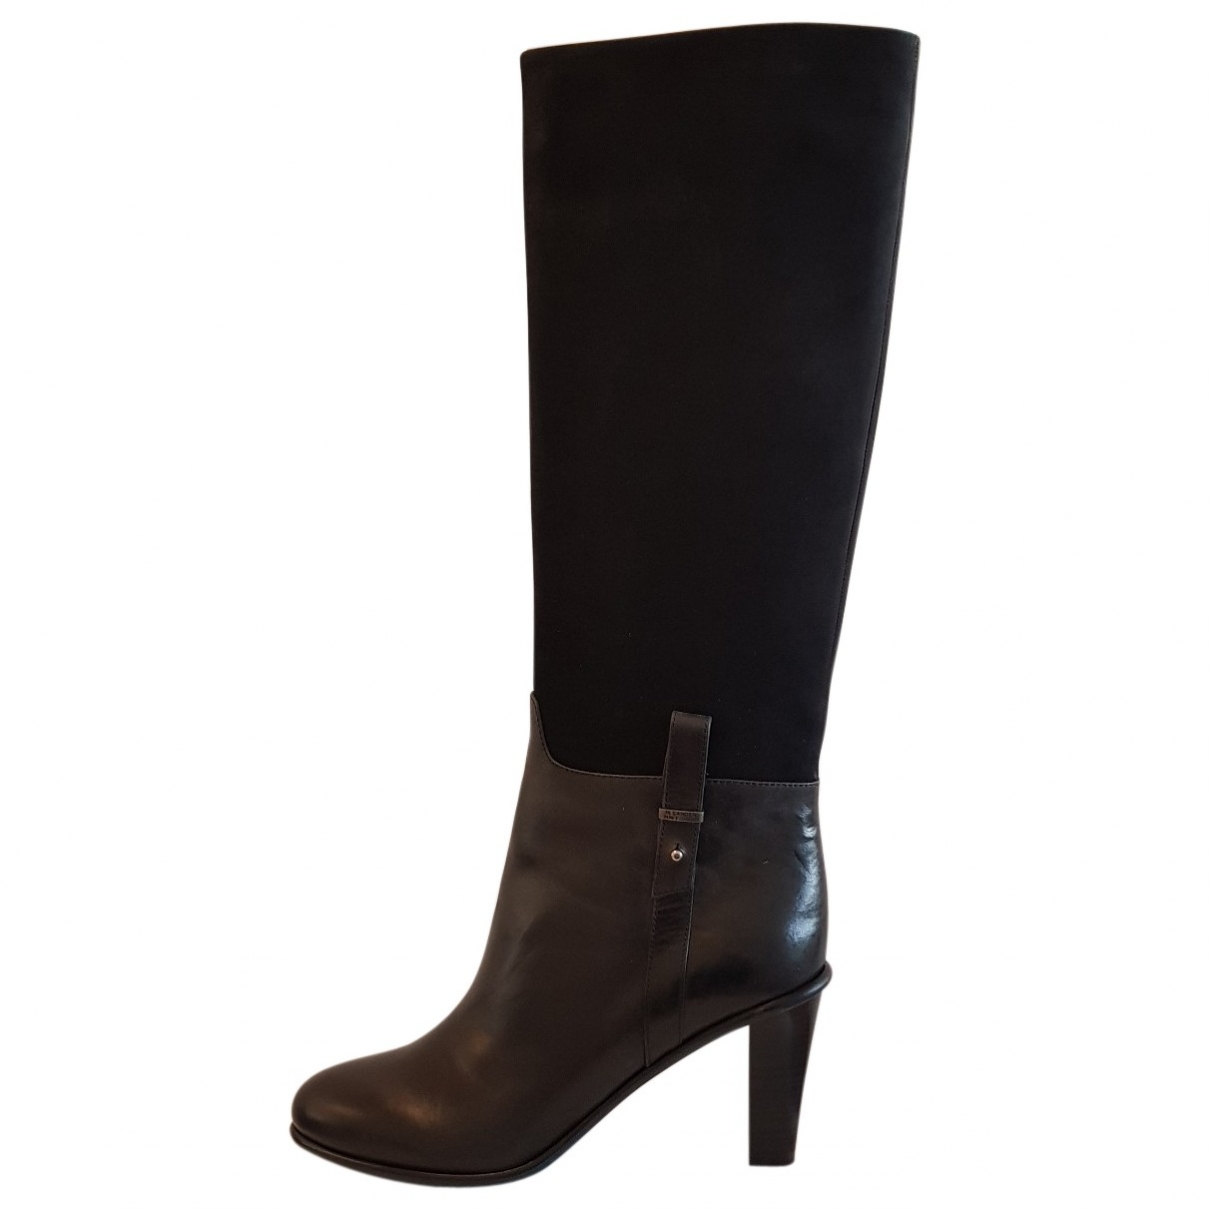 Jil Sander \N Black Leather Boots for Women 41 EU